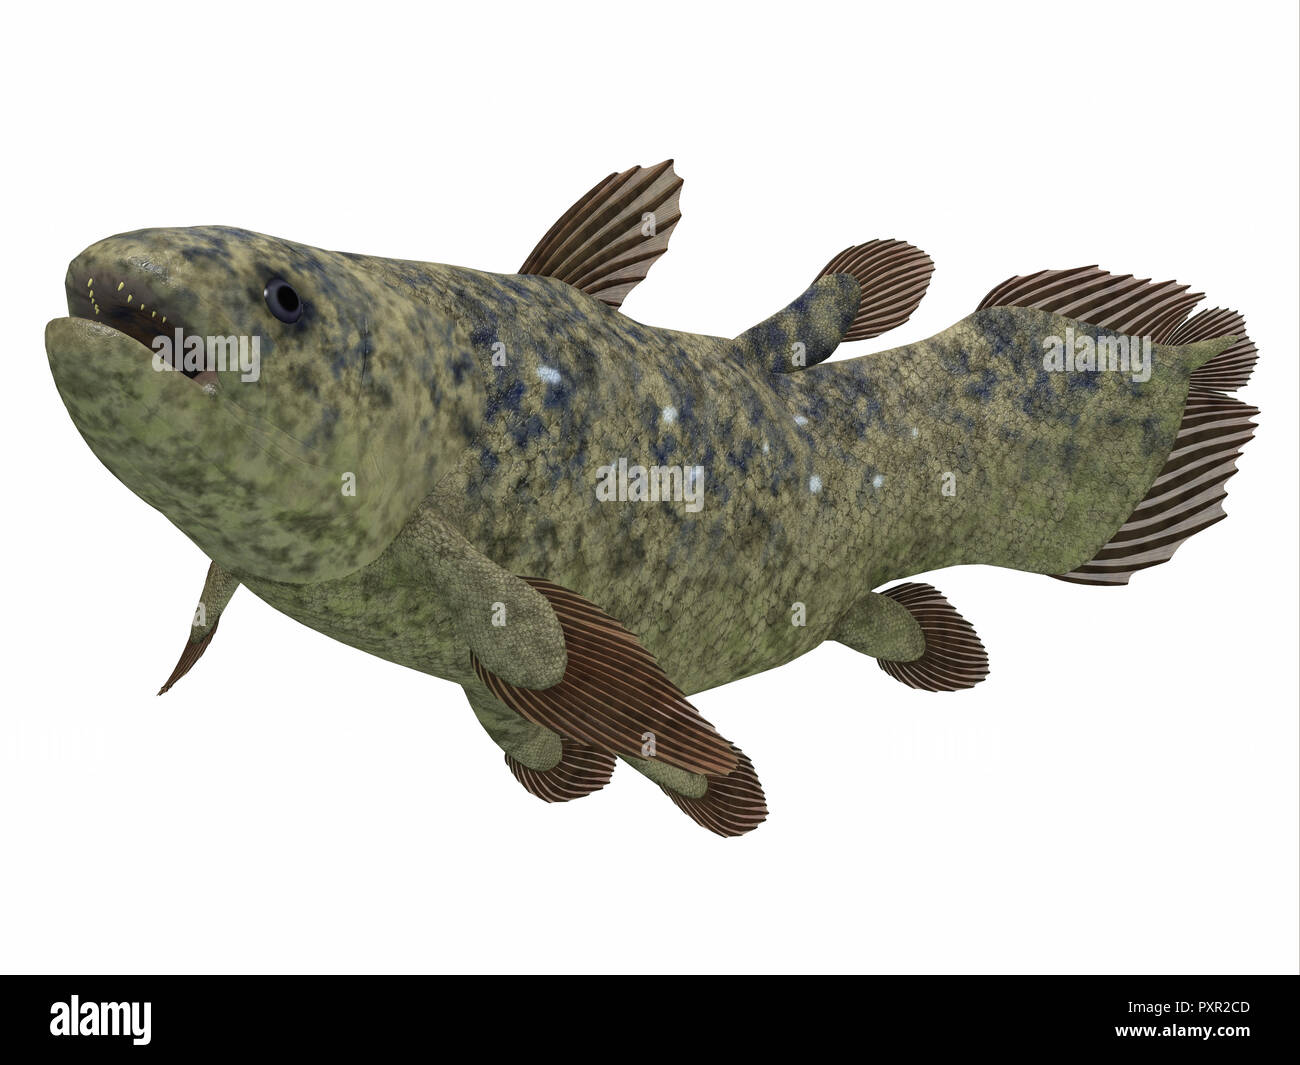 Coelacanth Fish Side Profile - The Coelacanth fish was thought to be extinct but was found to be a still living species. - Stock Image